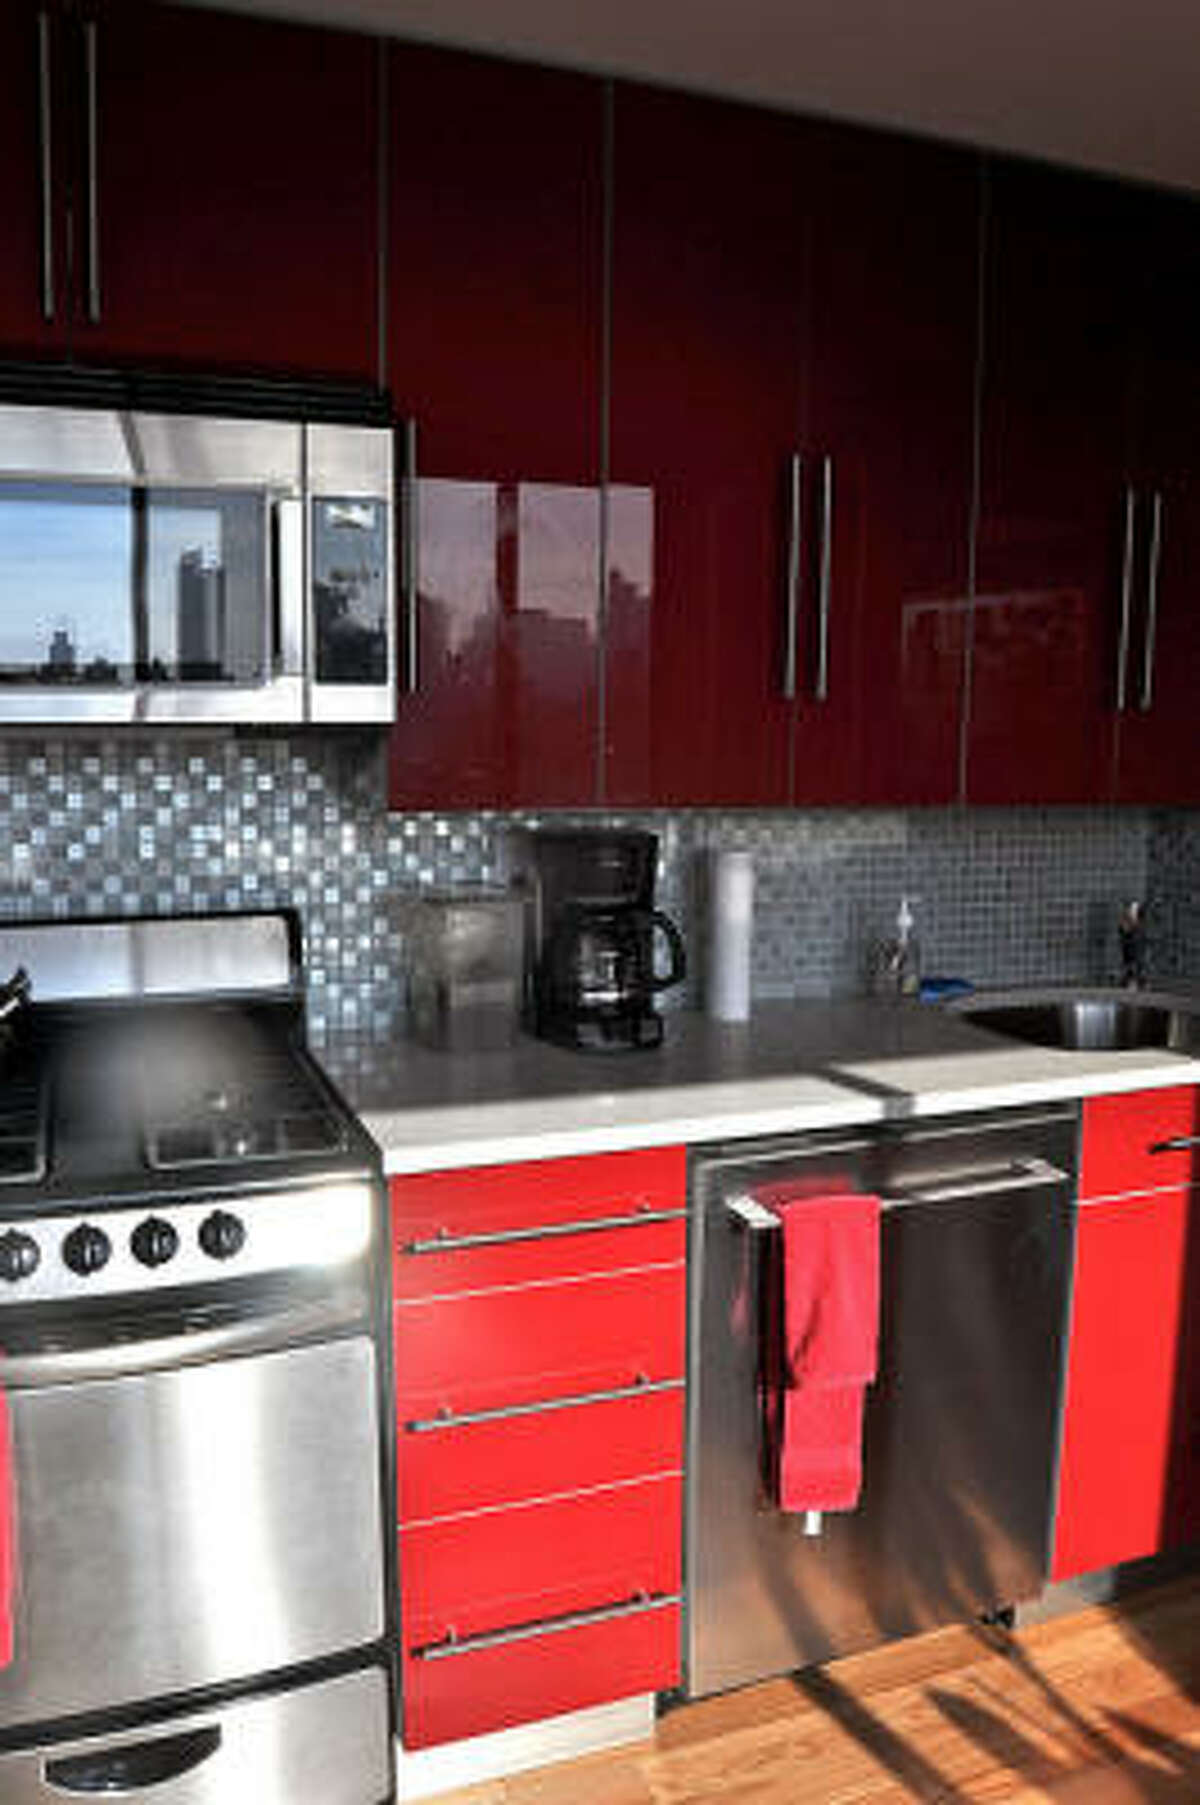 Shiny silvers and grays go with the stainless steel appliances.